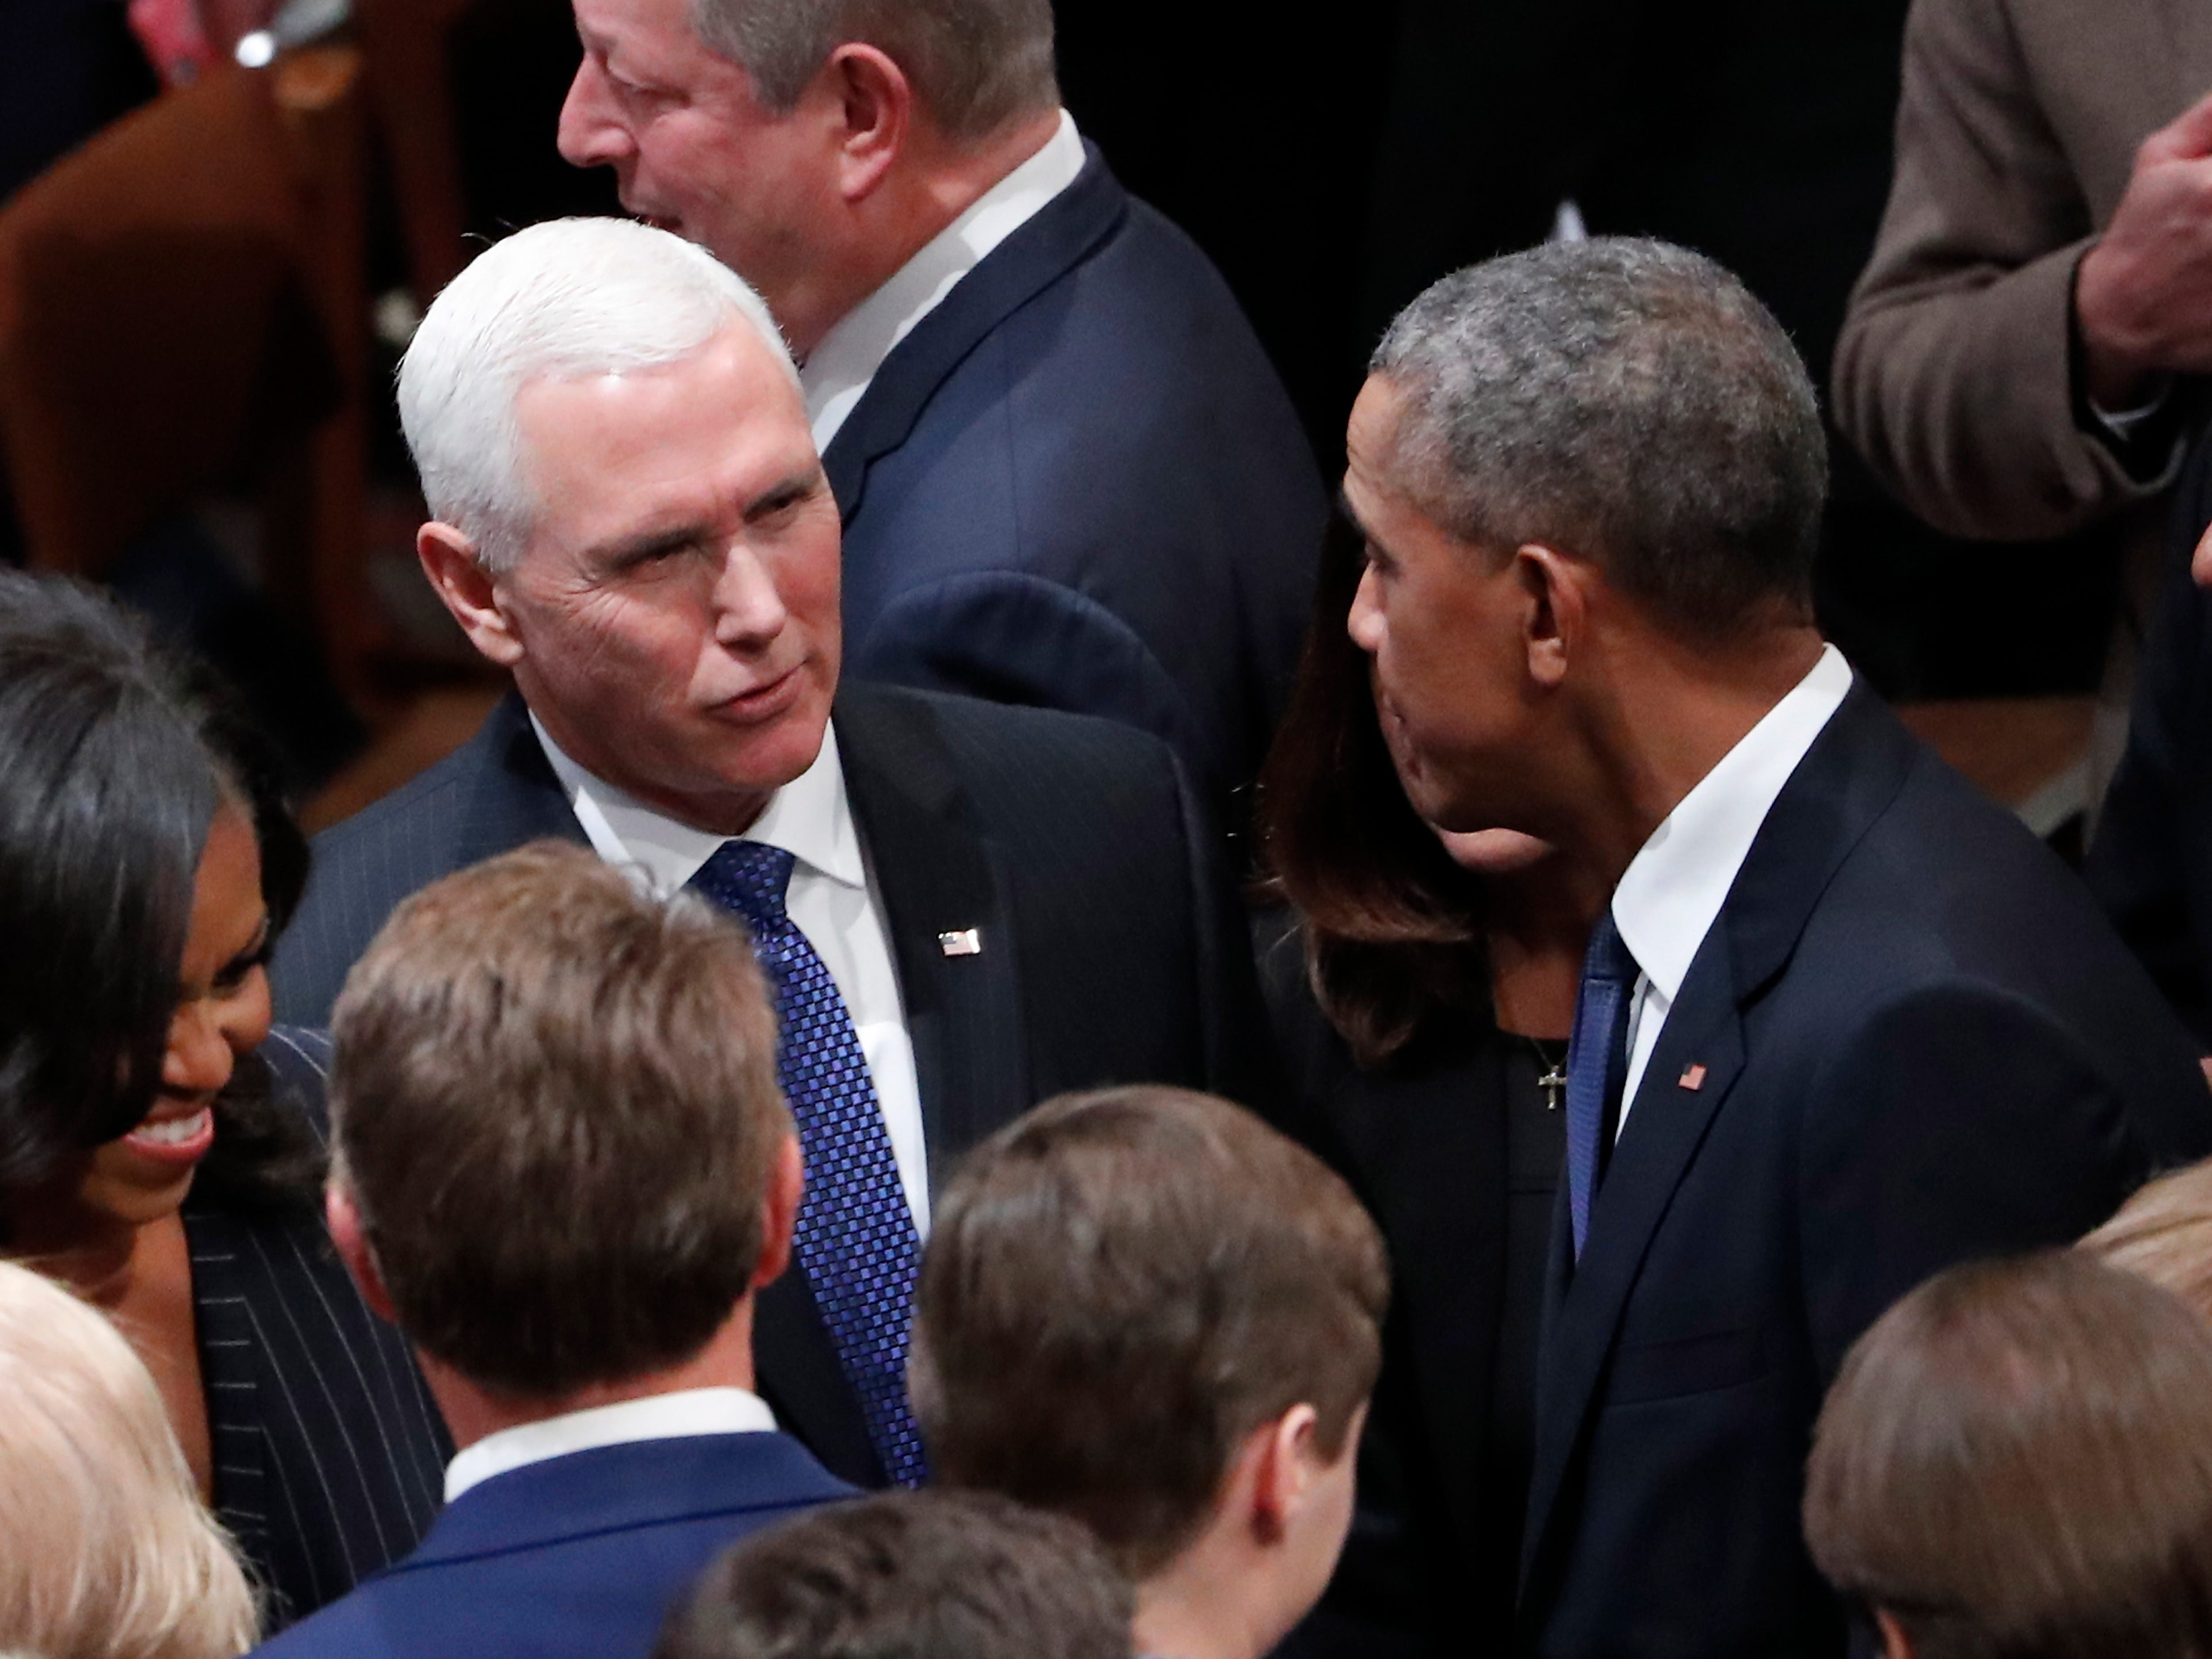 Former President Barack Obama, right, talks with Vice President Mike Pence before the funeral services for former President George H. W. Bush at the National Cathedral, in Washington, Dec. 5, 2018.